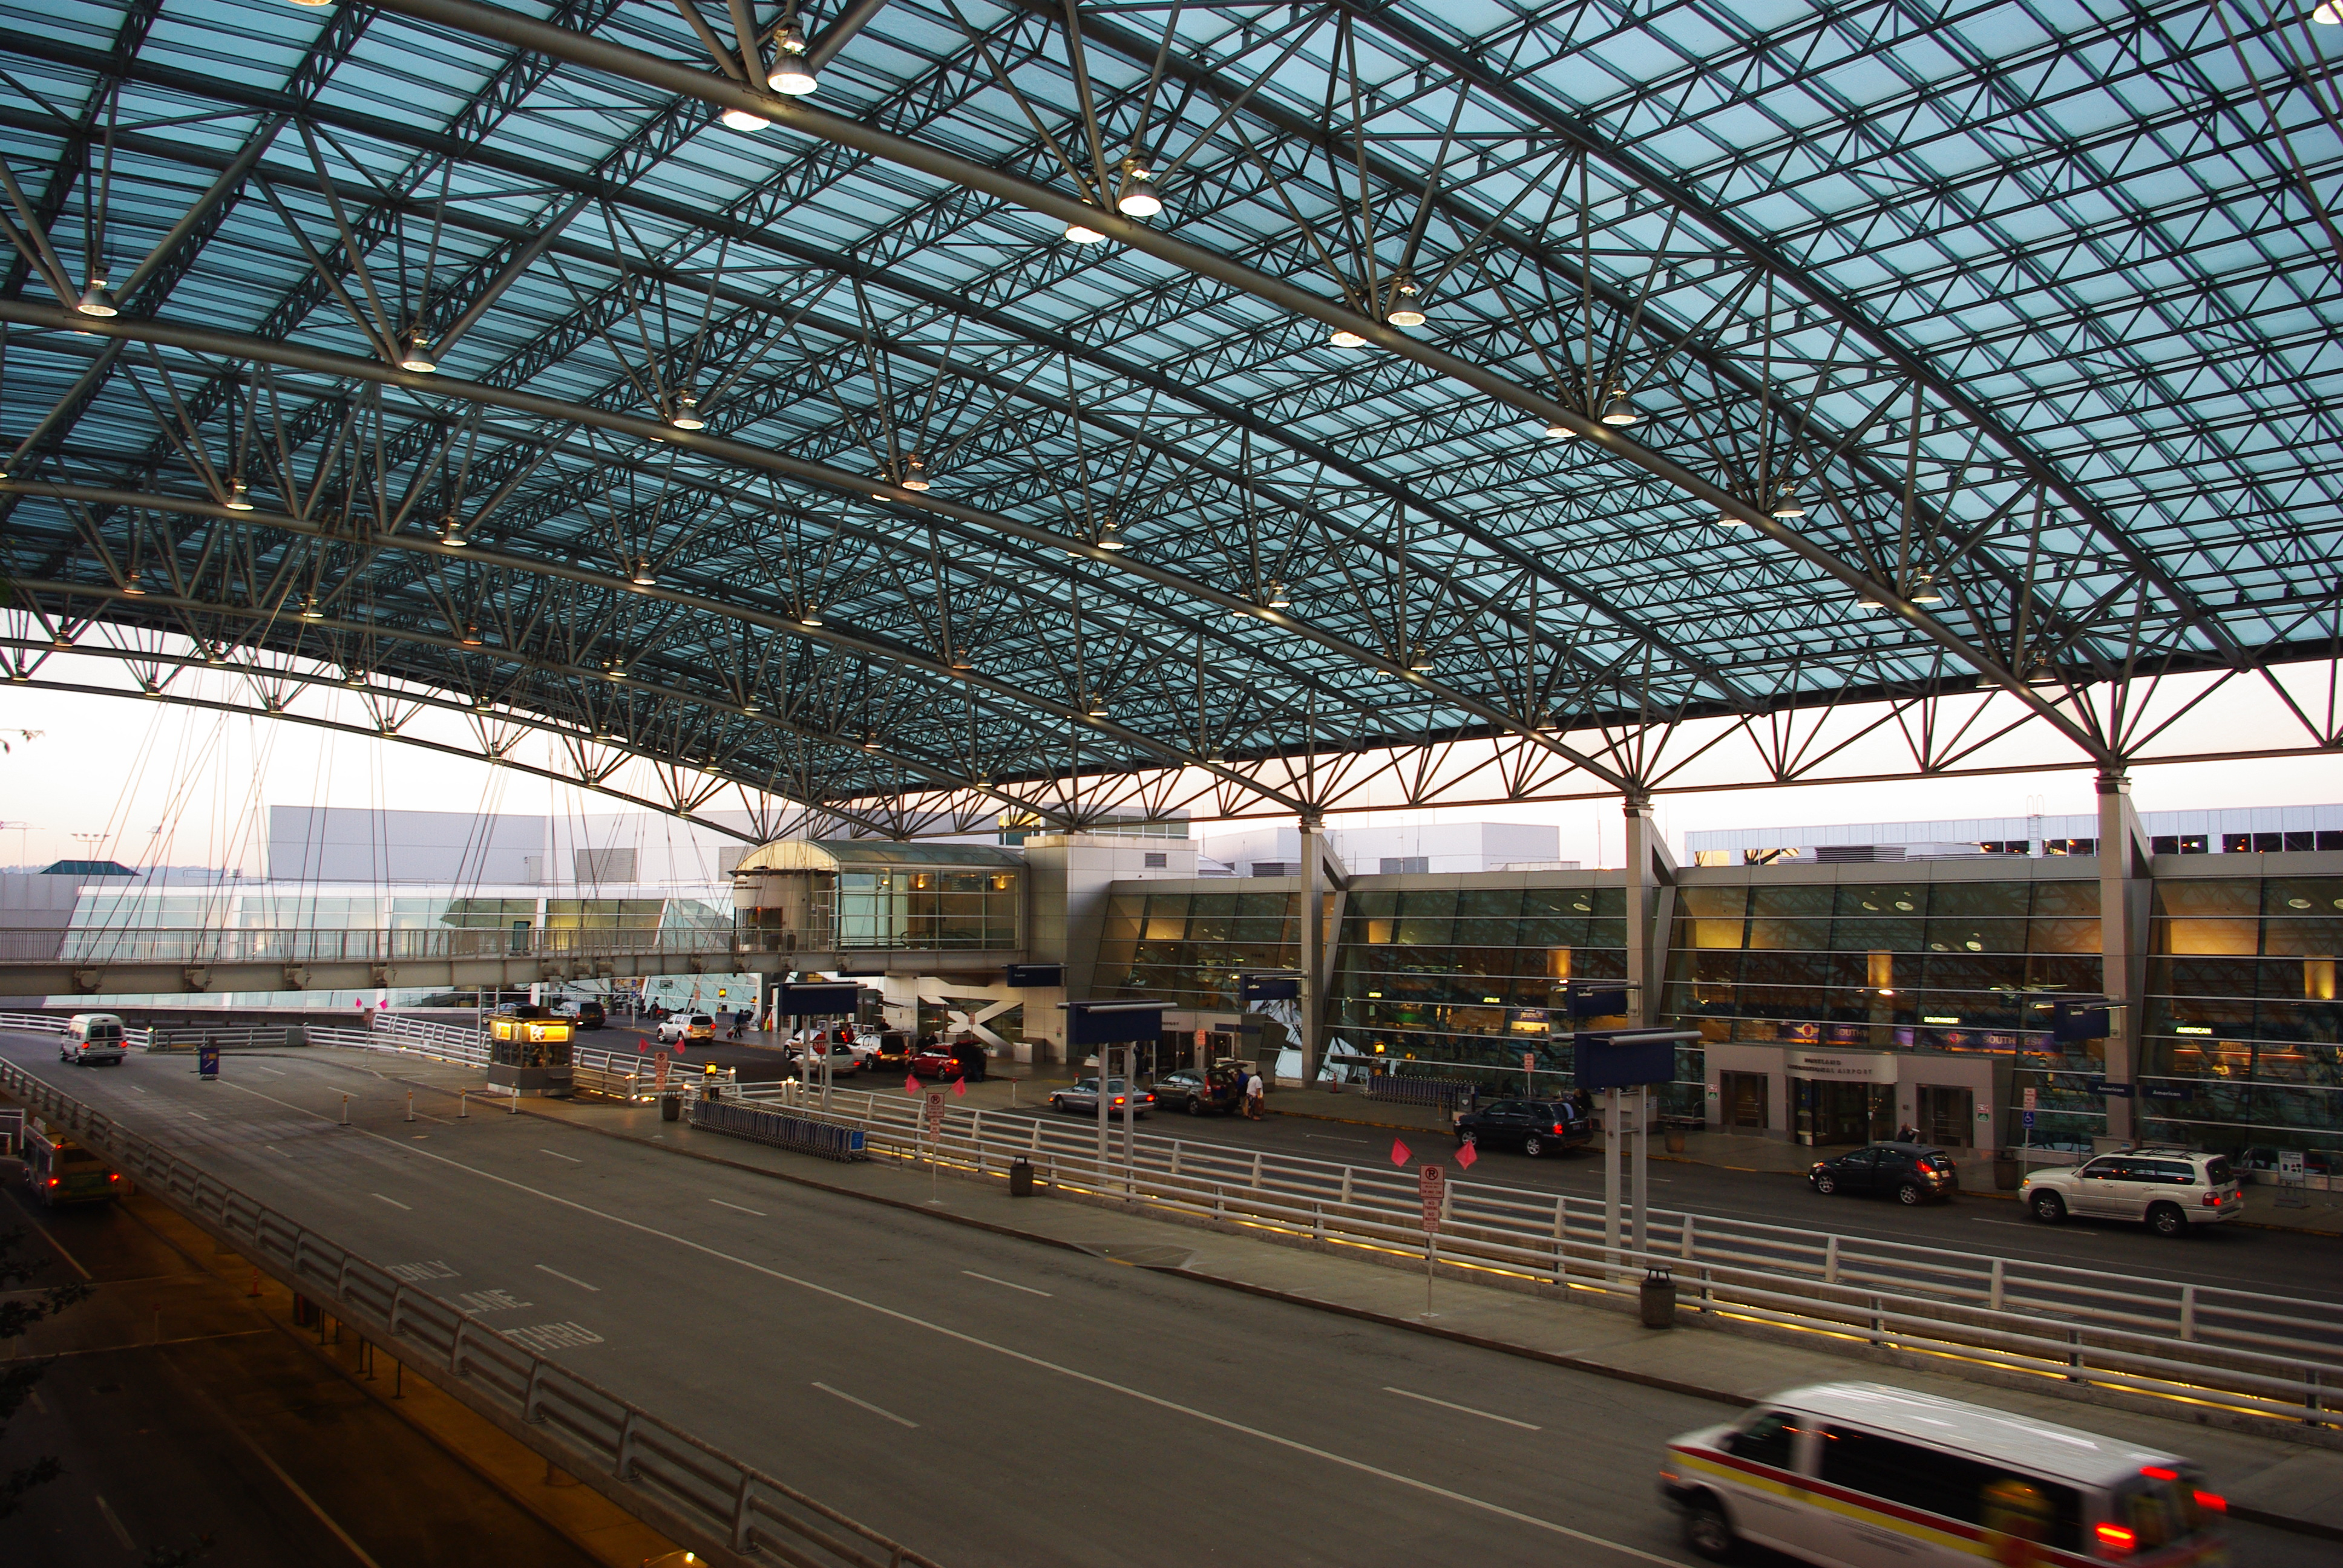 FilePortland International Airport canopy wide - Oregon04.JPG & File:Portland International Airport canopy wide - Oregon04.JPG ...